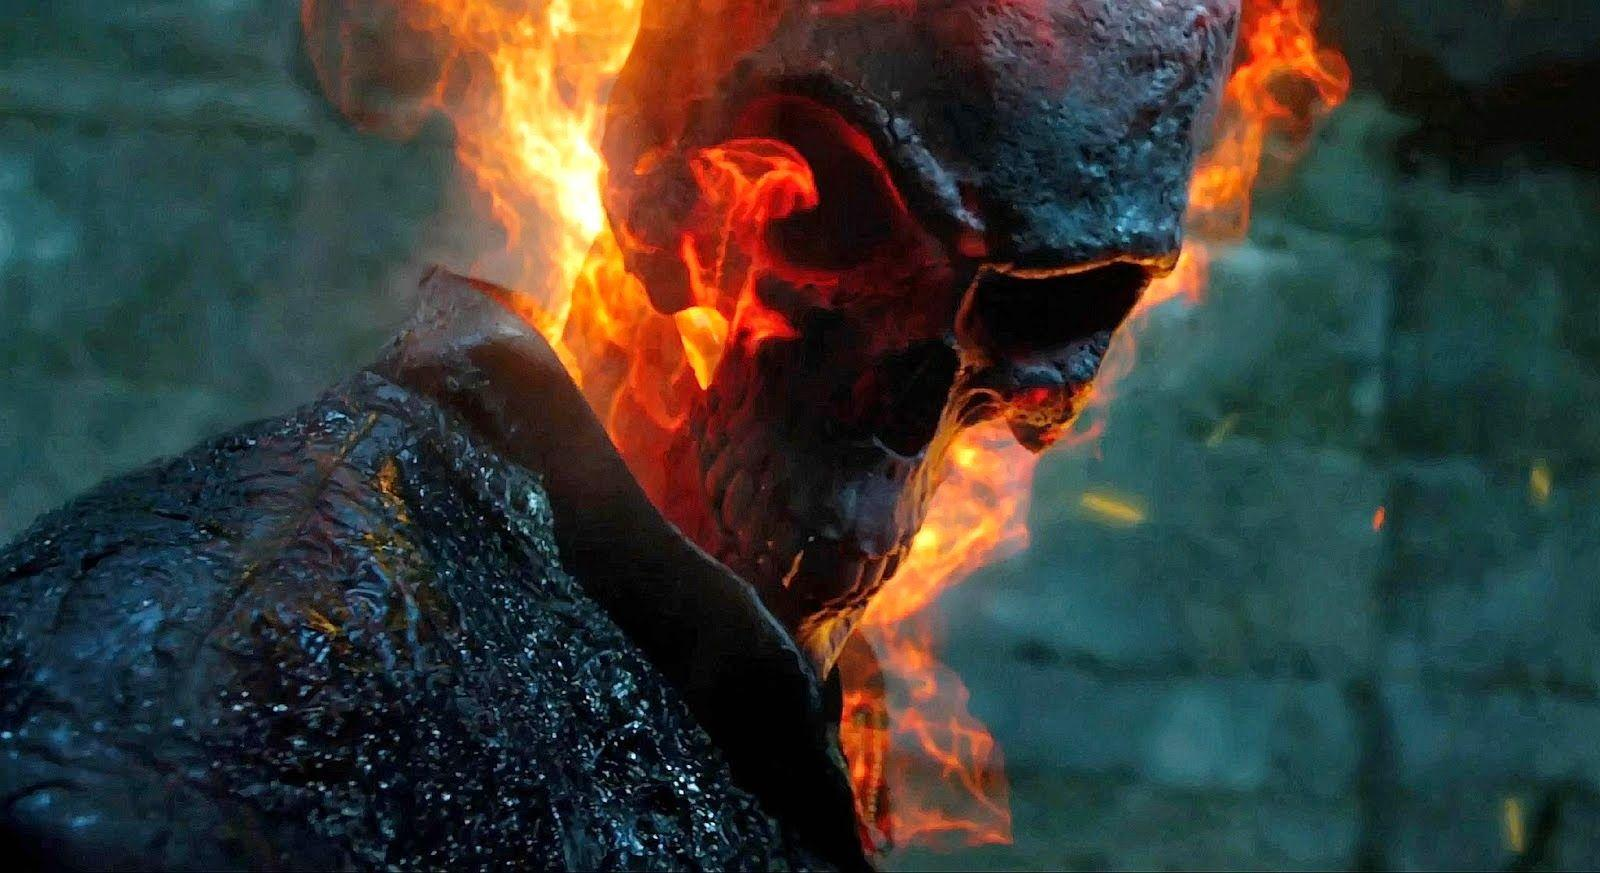 Download Ghost Rider Wallpapers